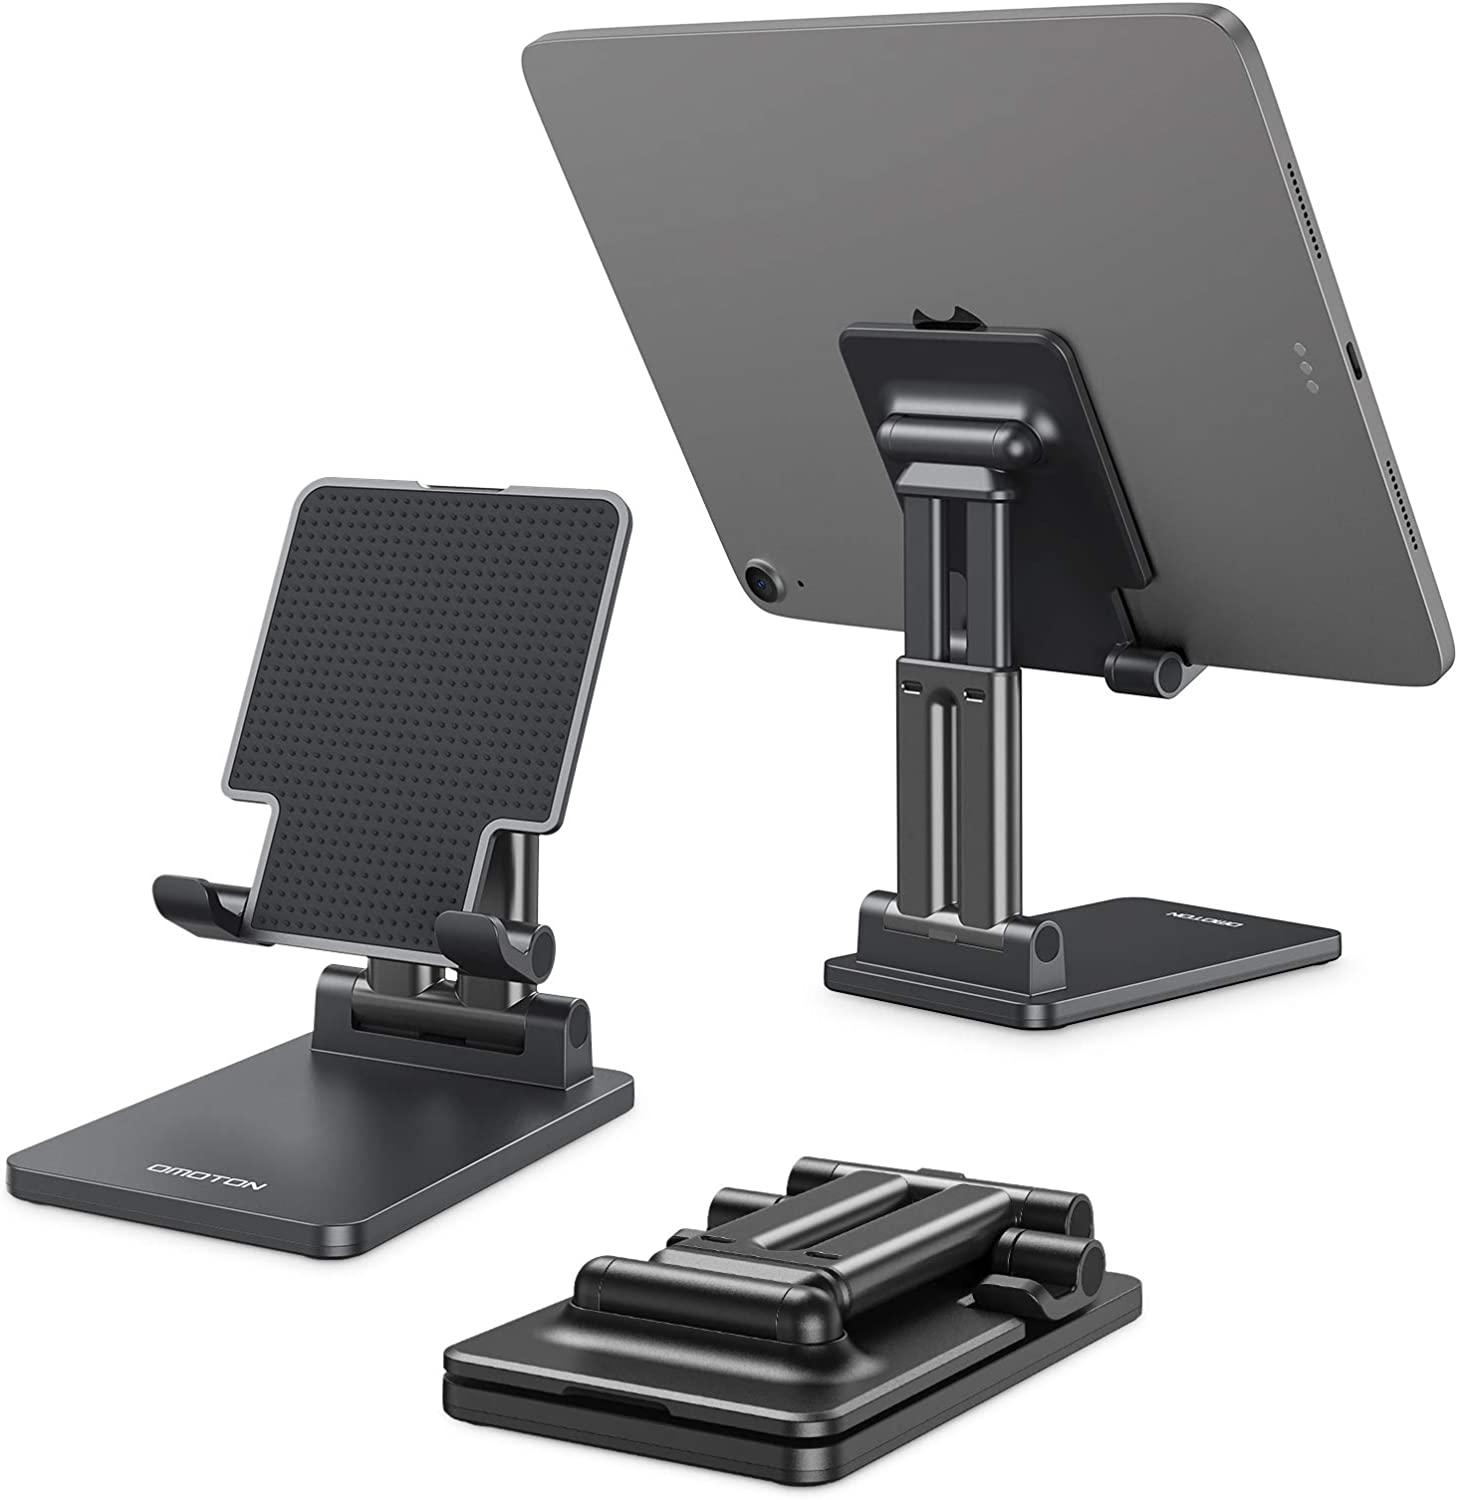 OMOTON Tablet Stand Foldable TA01 Desktop Stand, Height Angle Adjustable Aluminum Tablet Holder Cradle Dock Compatible with iPad, Samsung Tabs and Other Devices (Up to 11